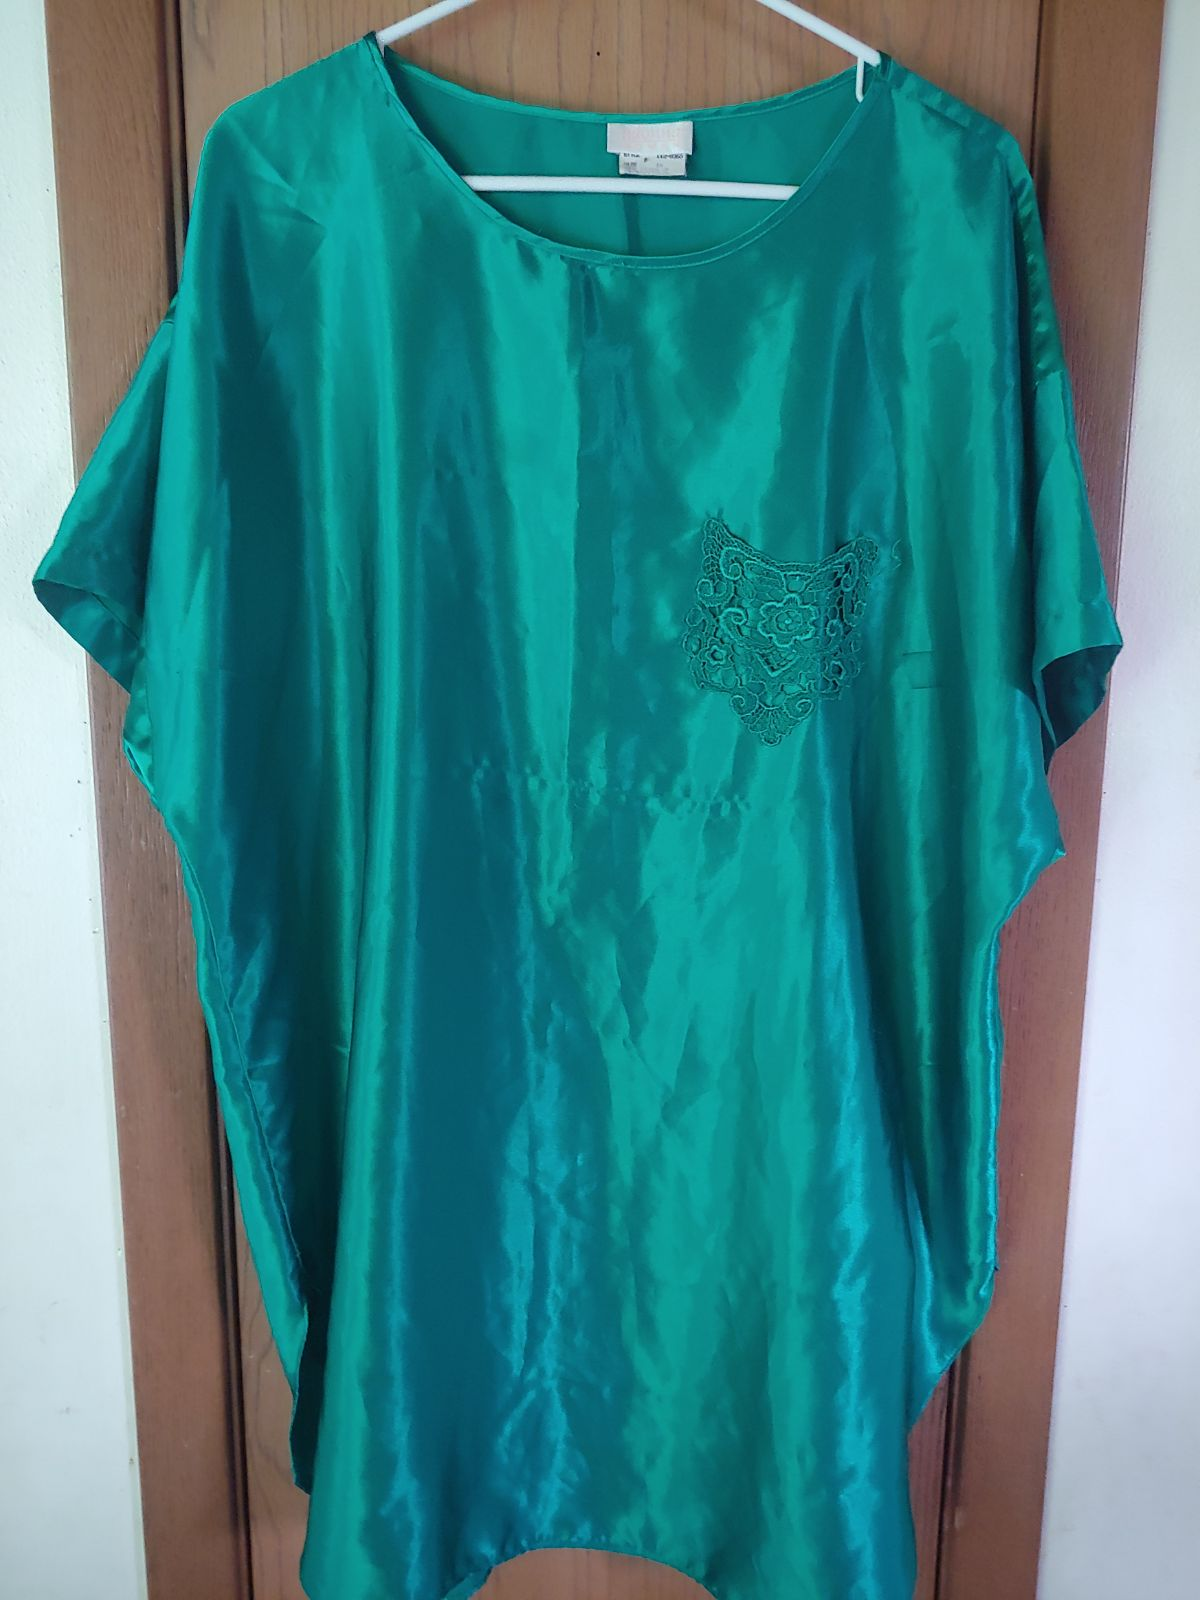 1X Green Adonna Nightgown